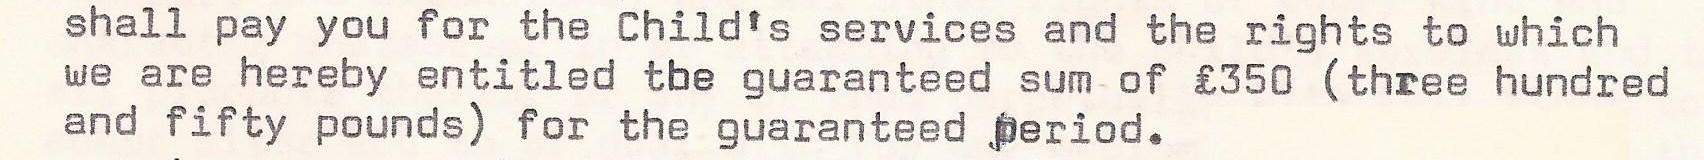 Theatre Projects contract 1973 payment